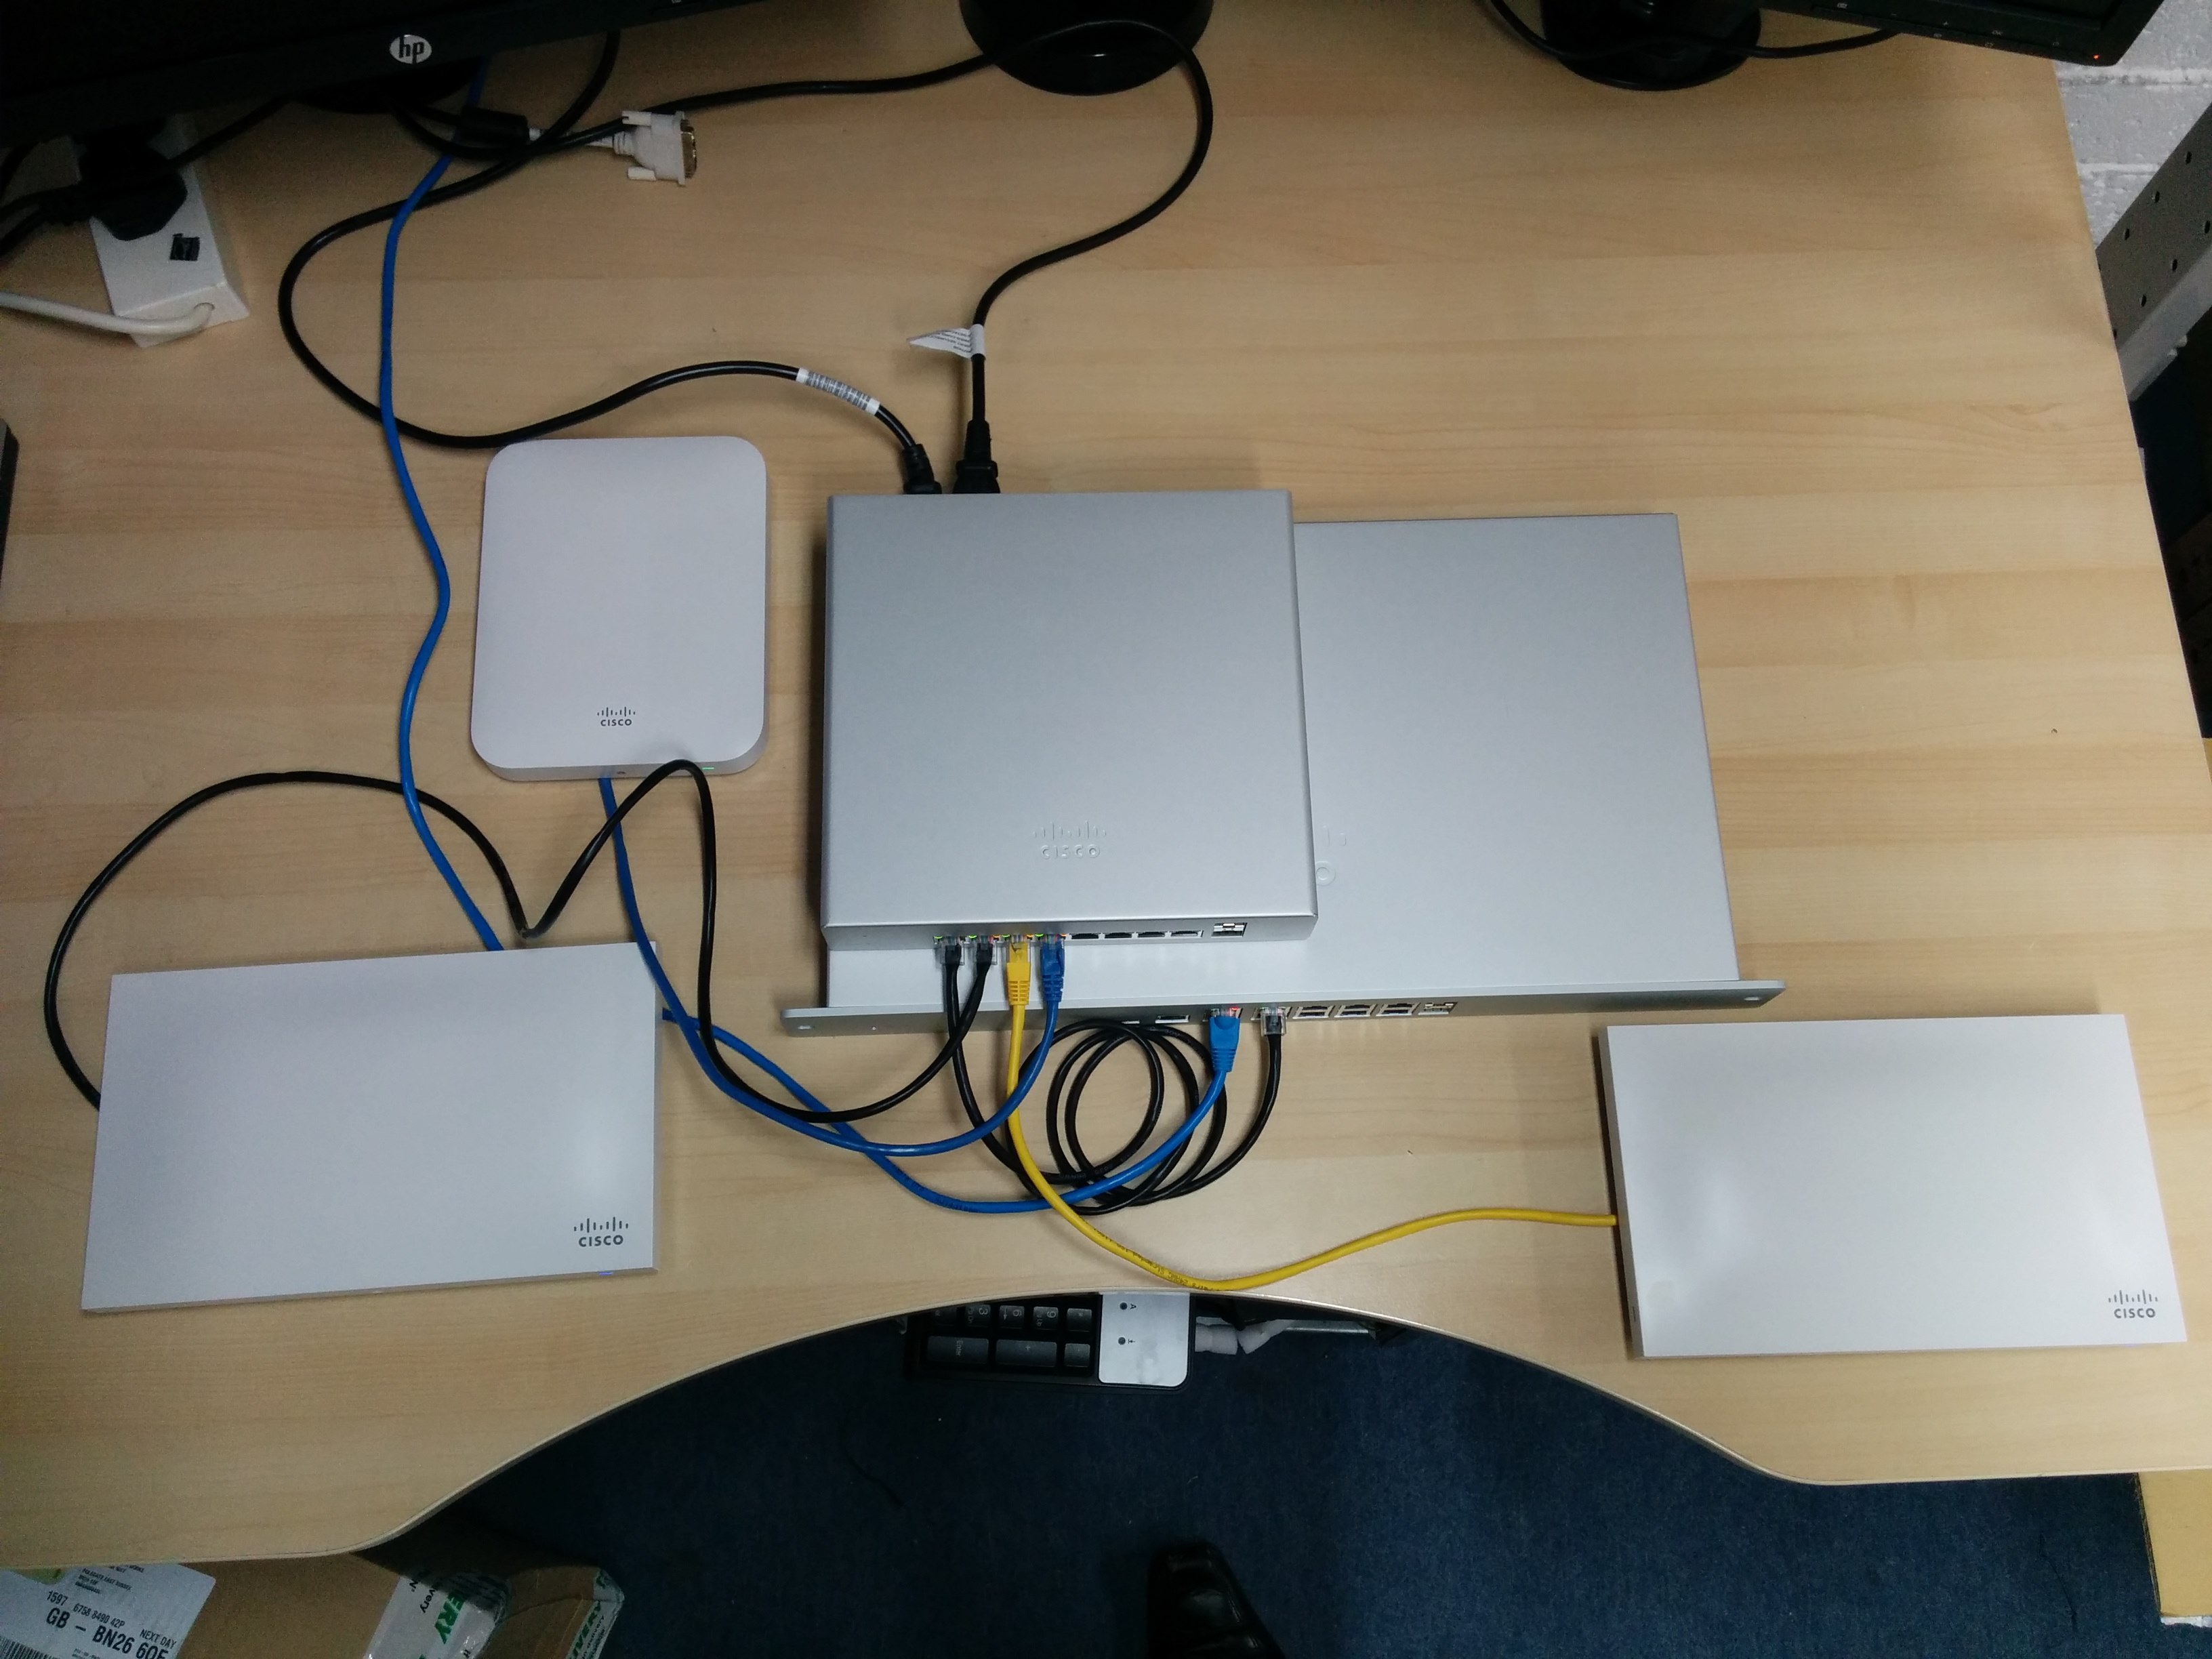 Demo Lab Configure A Meraki Network Slashadmin Life In It Cisco Diagram Design Elements Switches And Hubs Win 20